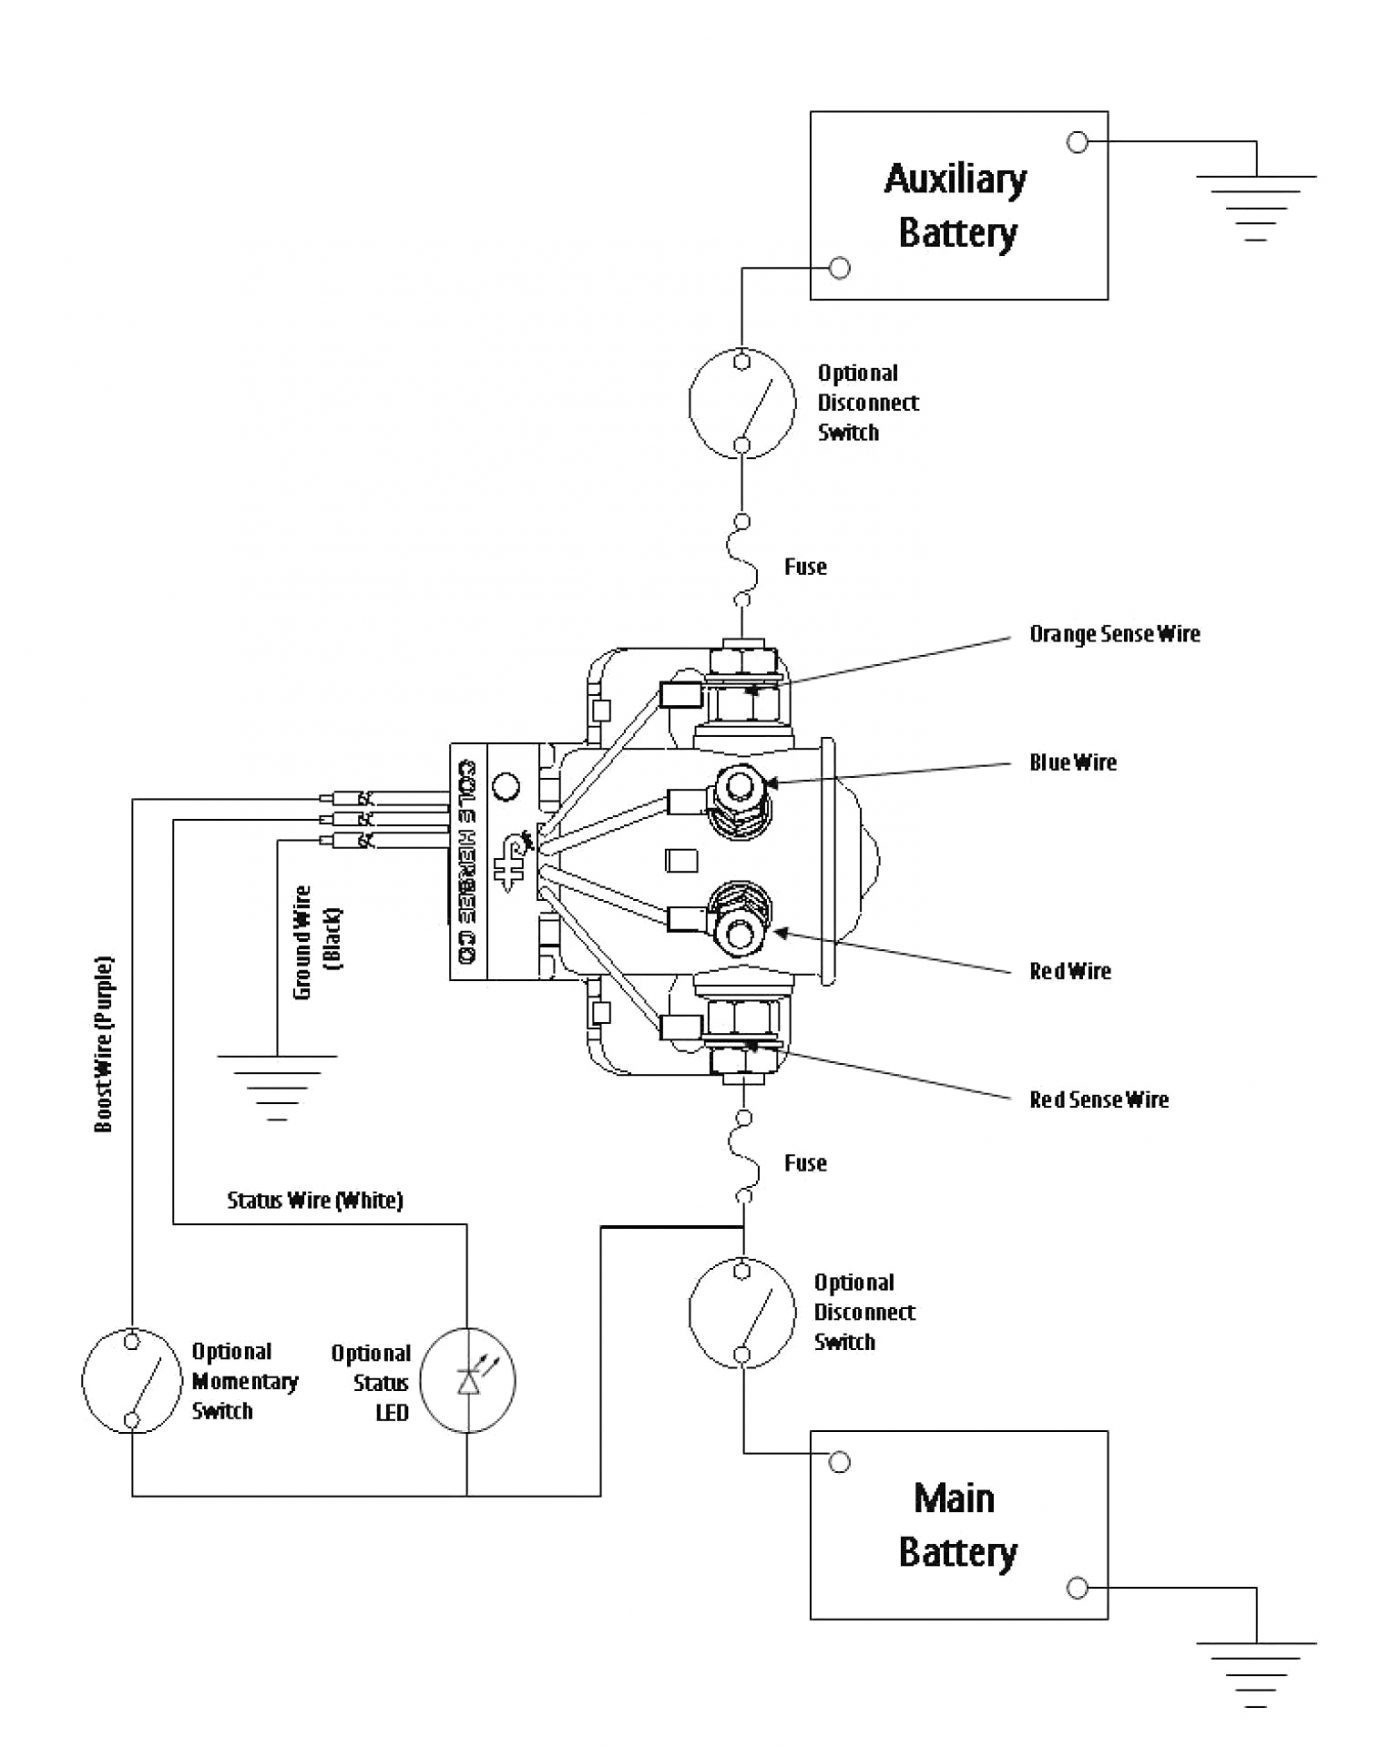 Rv Battery Disconnect Switch Wiring Diagram   Switch Wiring Diagram - 5 Wire Thermostat Wiring Diagram